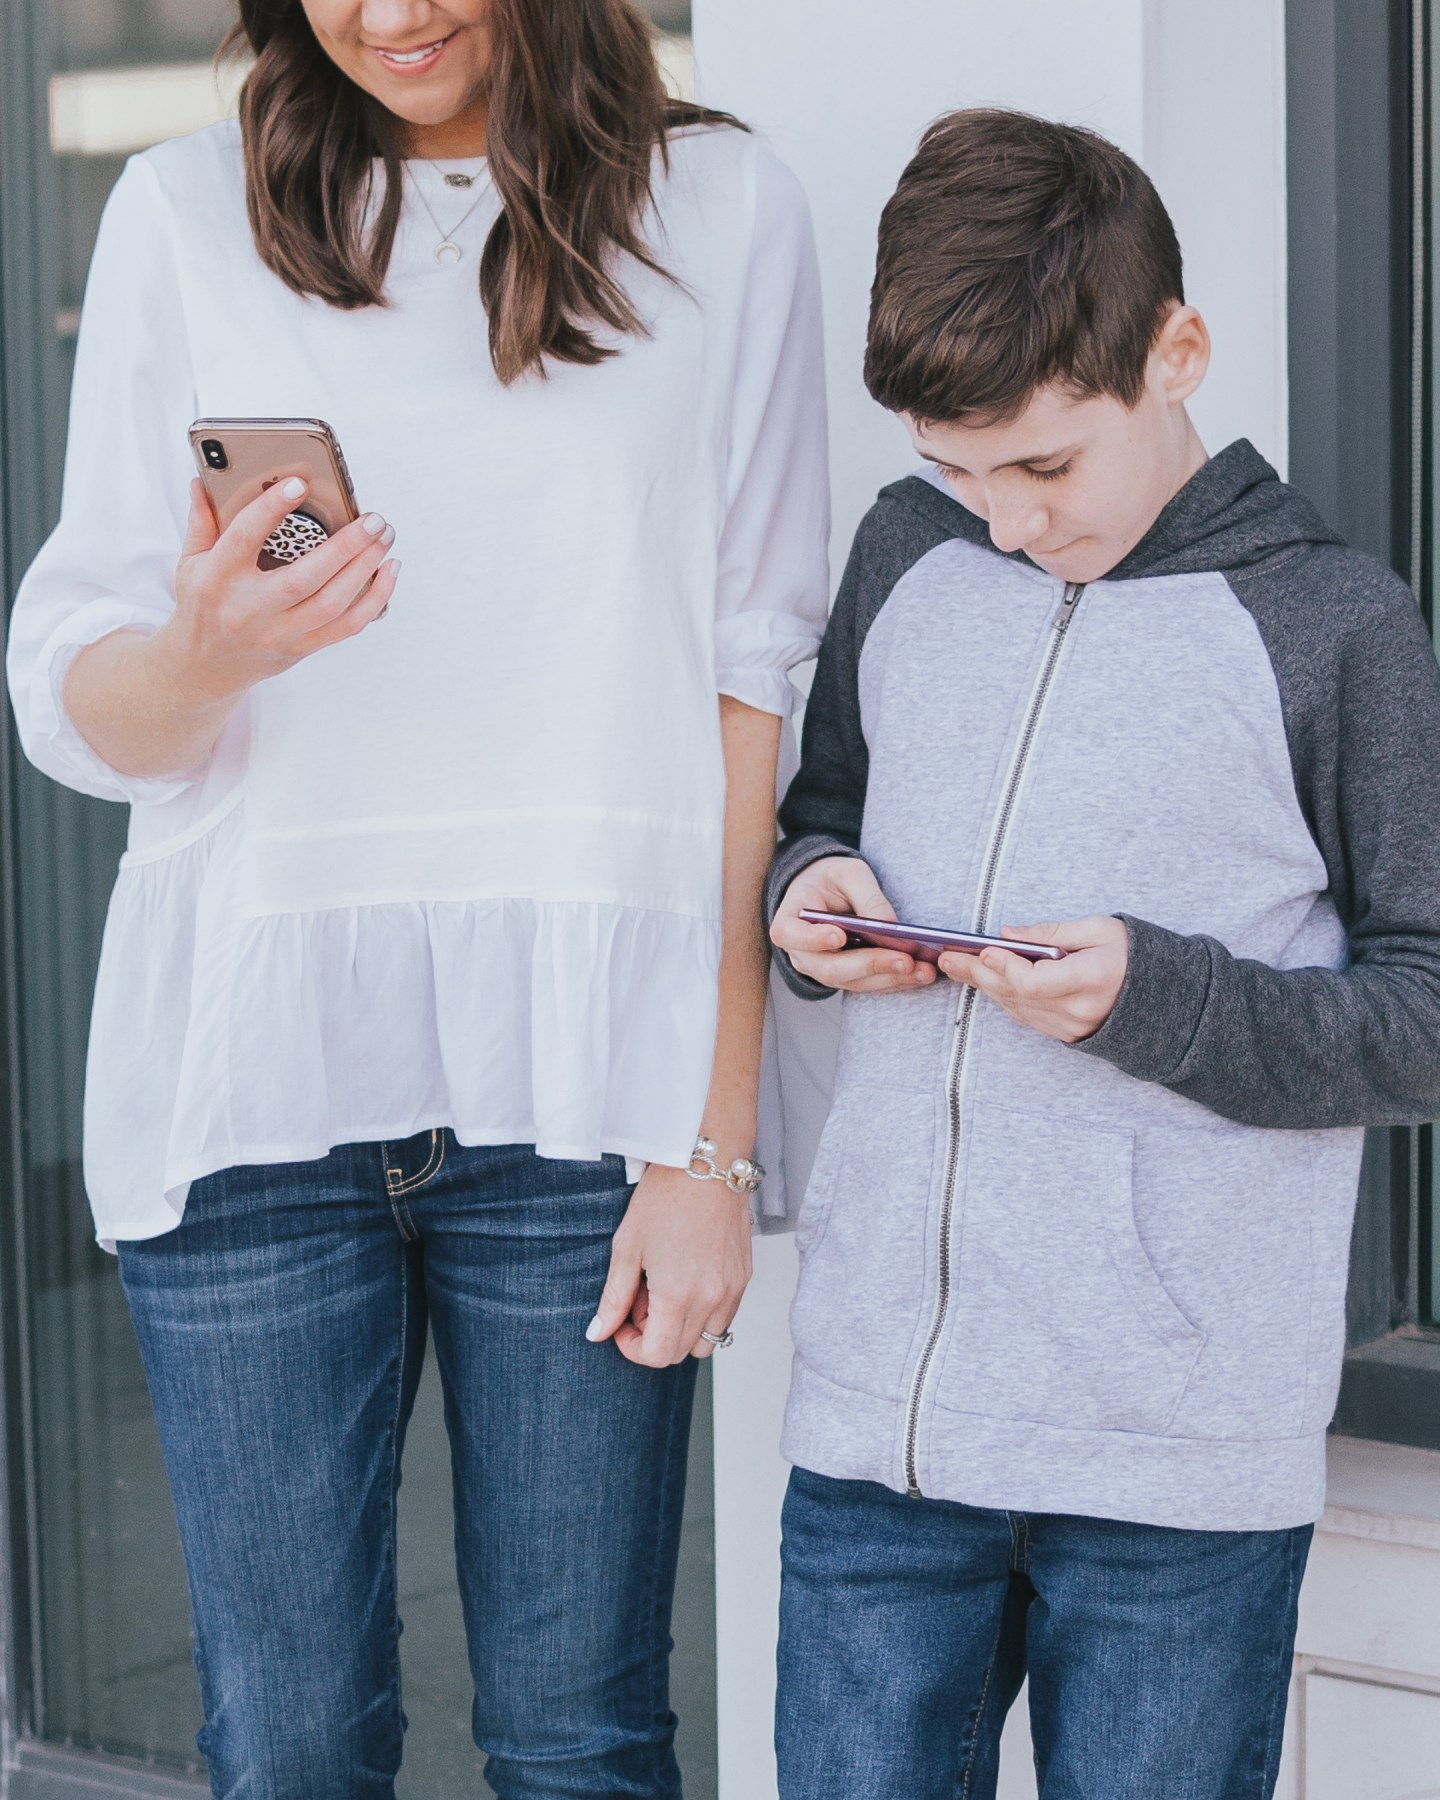 Trademore, how to choose a phone for your child, boho outfit, where to find the best preowned devices